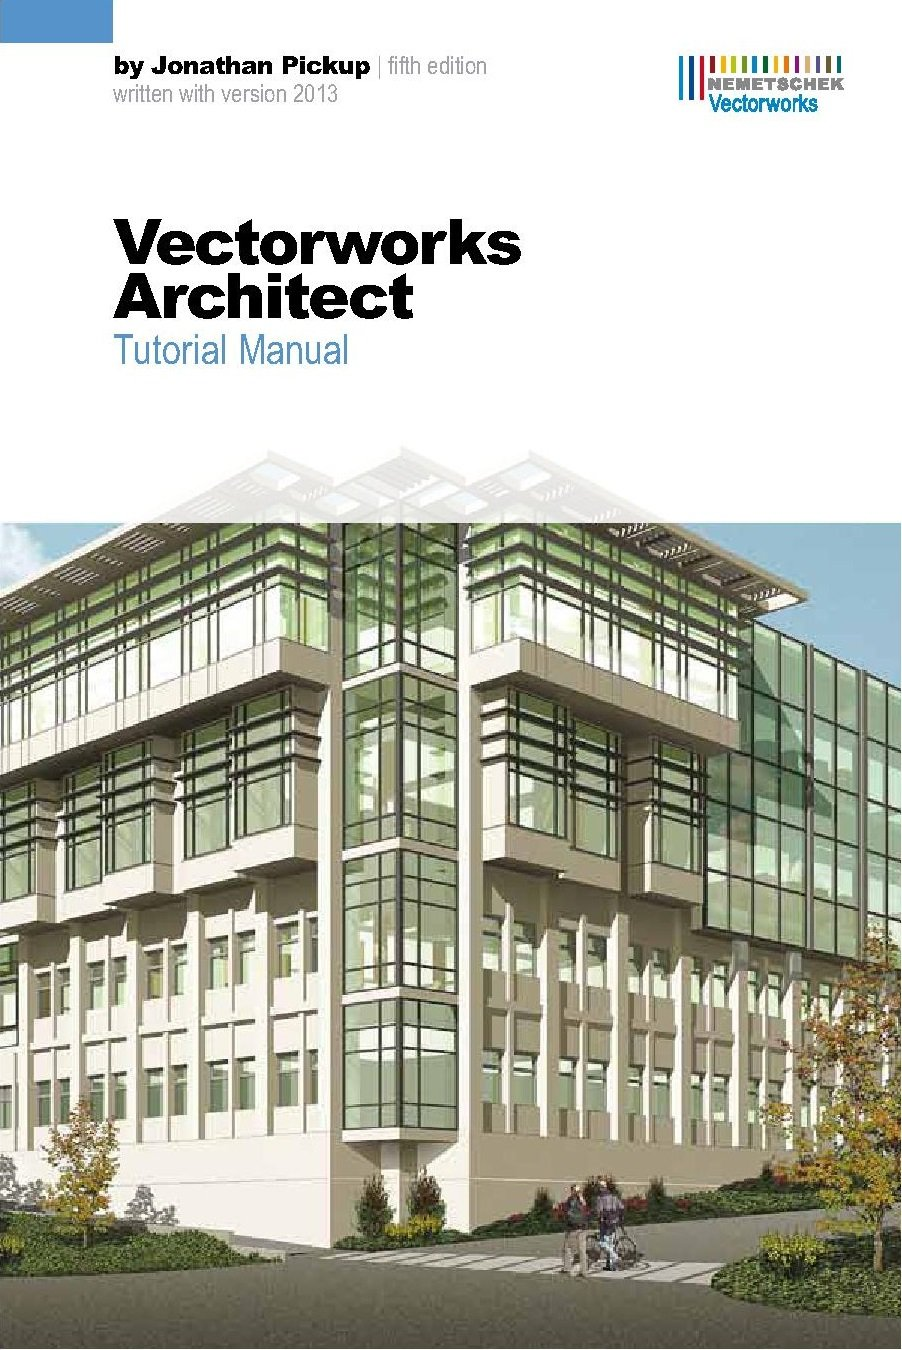 Vectorworks Architect Tutorial Manual, Fifth Edition: Jonathan Pickup:  0730066313096: Amazon.com: Books